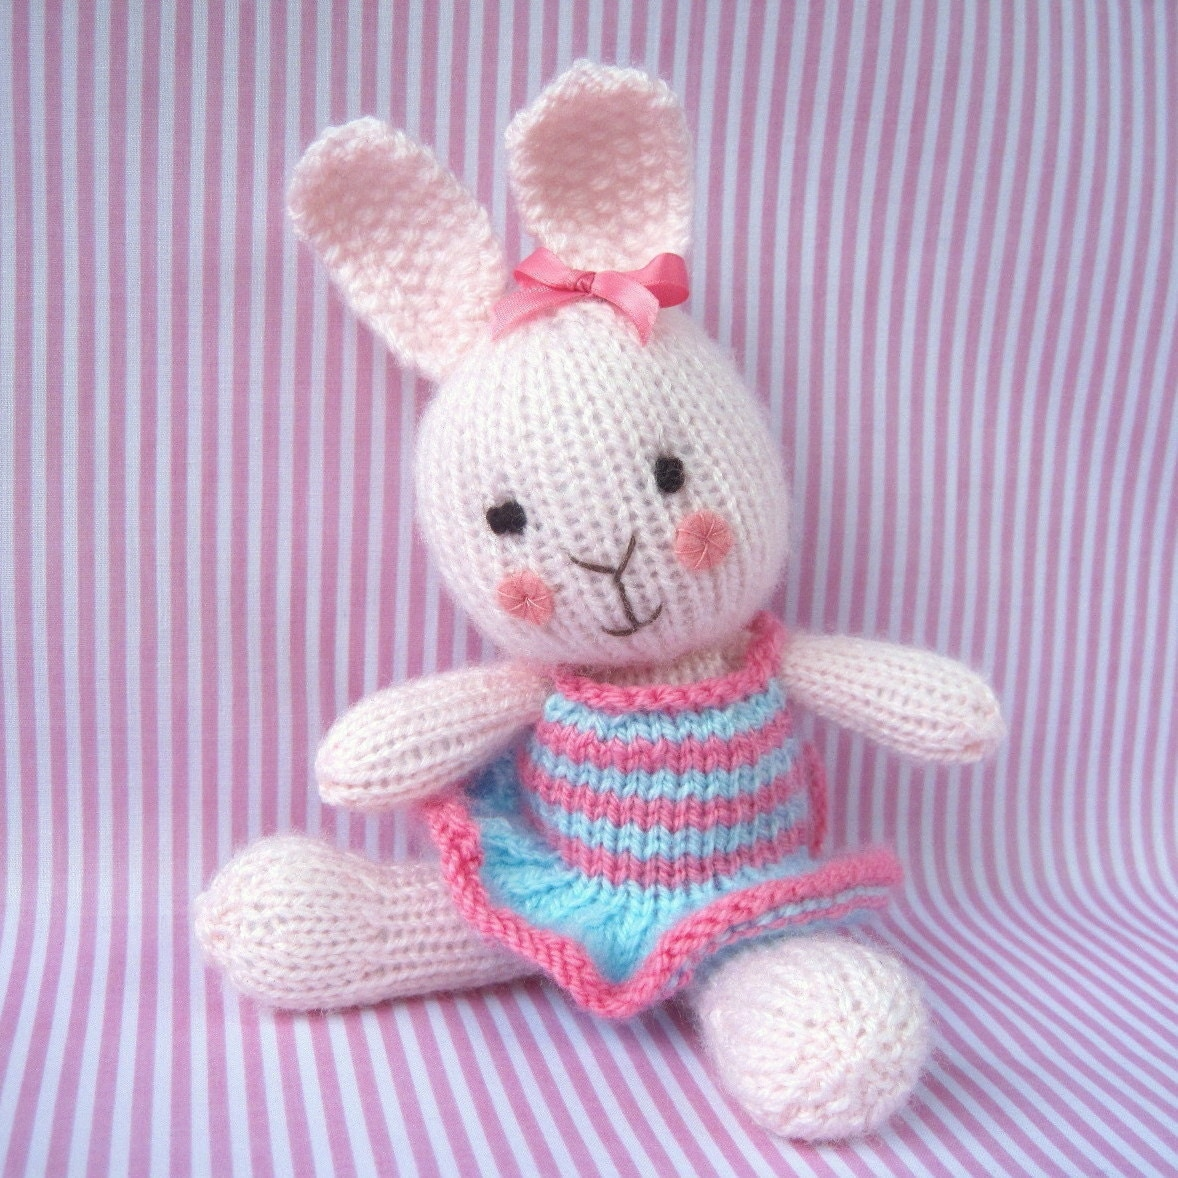 Candytuft toy bunny rabbit doll knitting pattern PDF